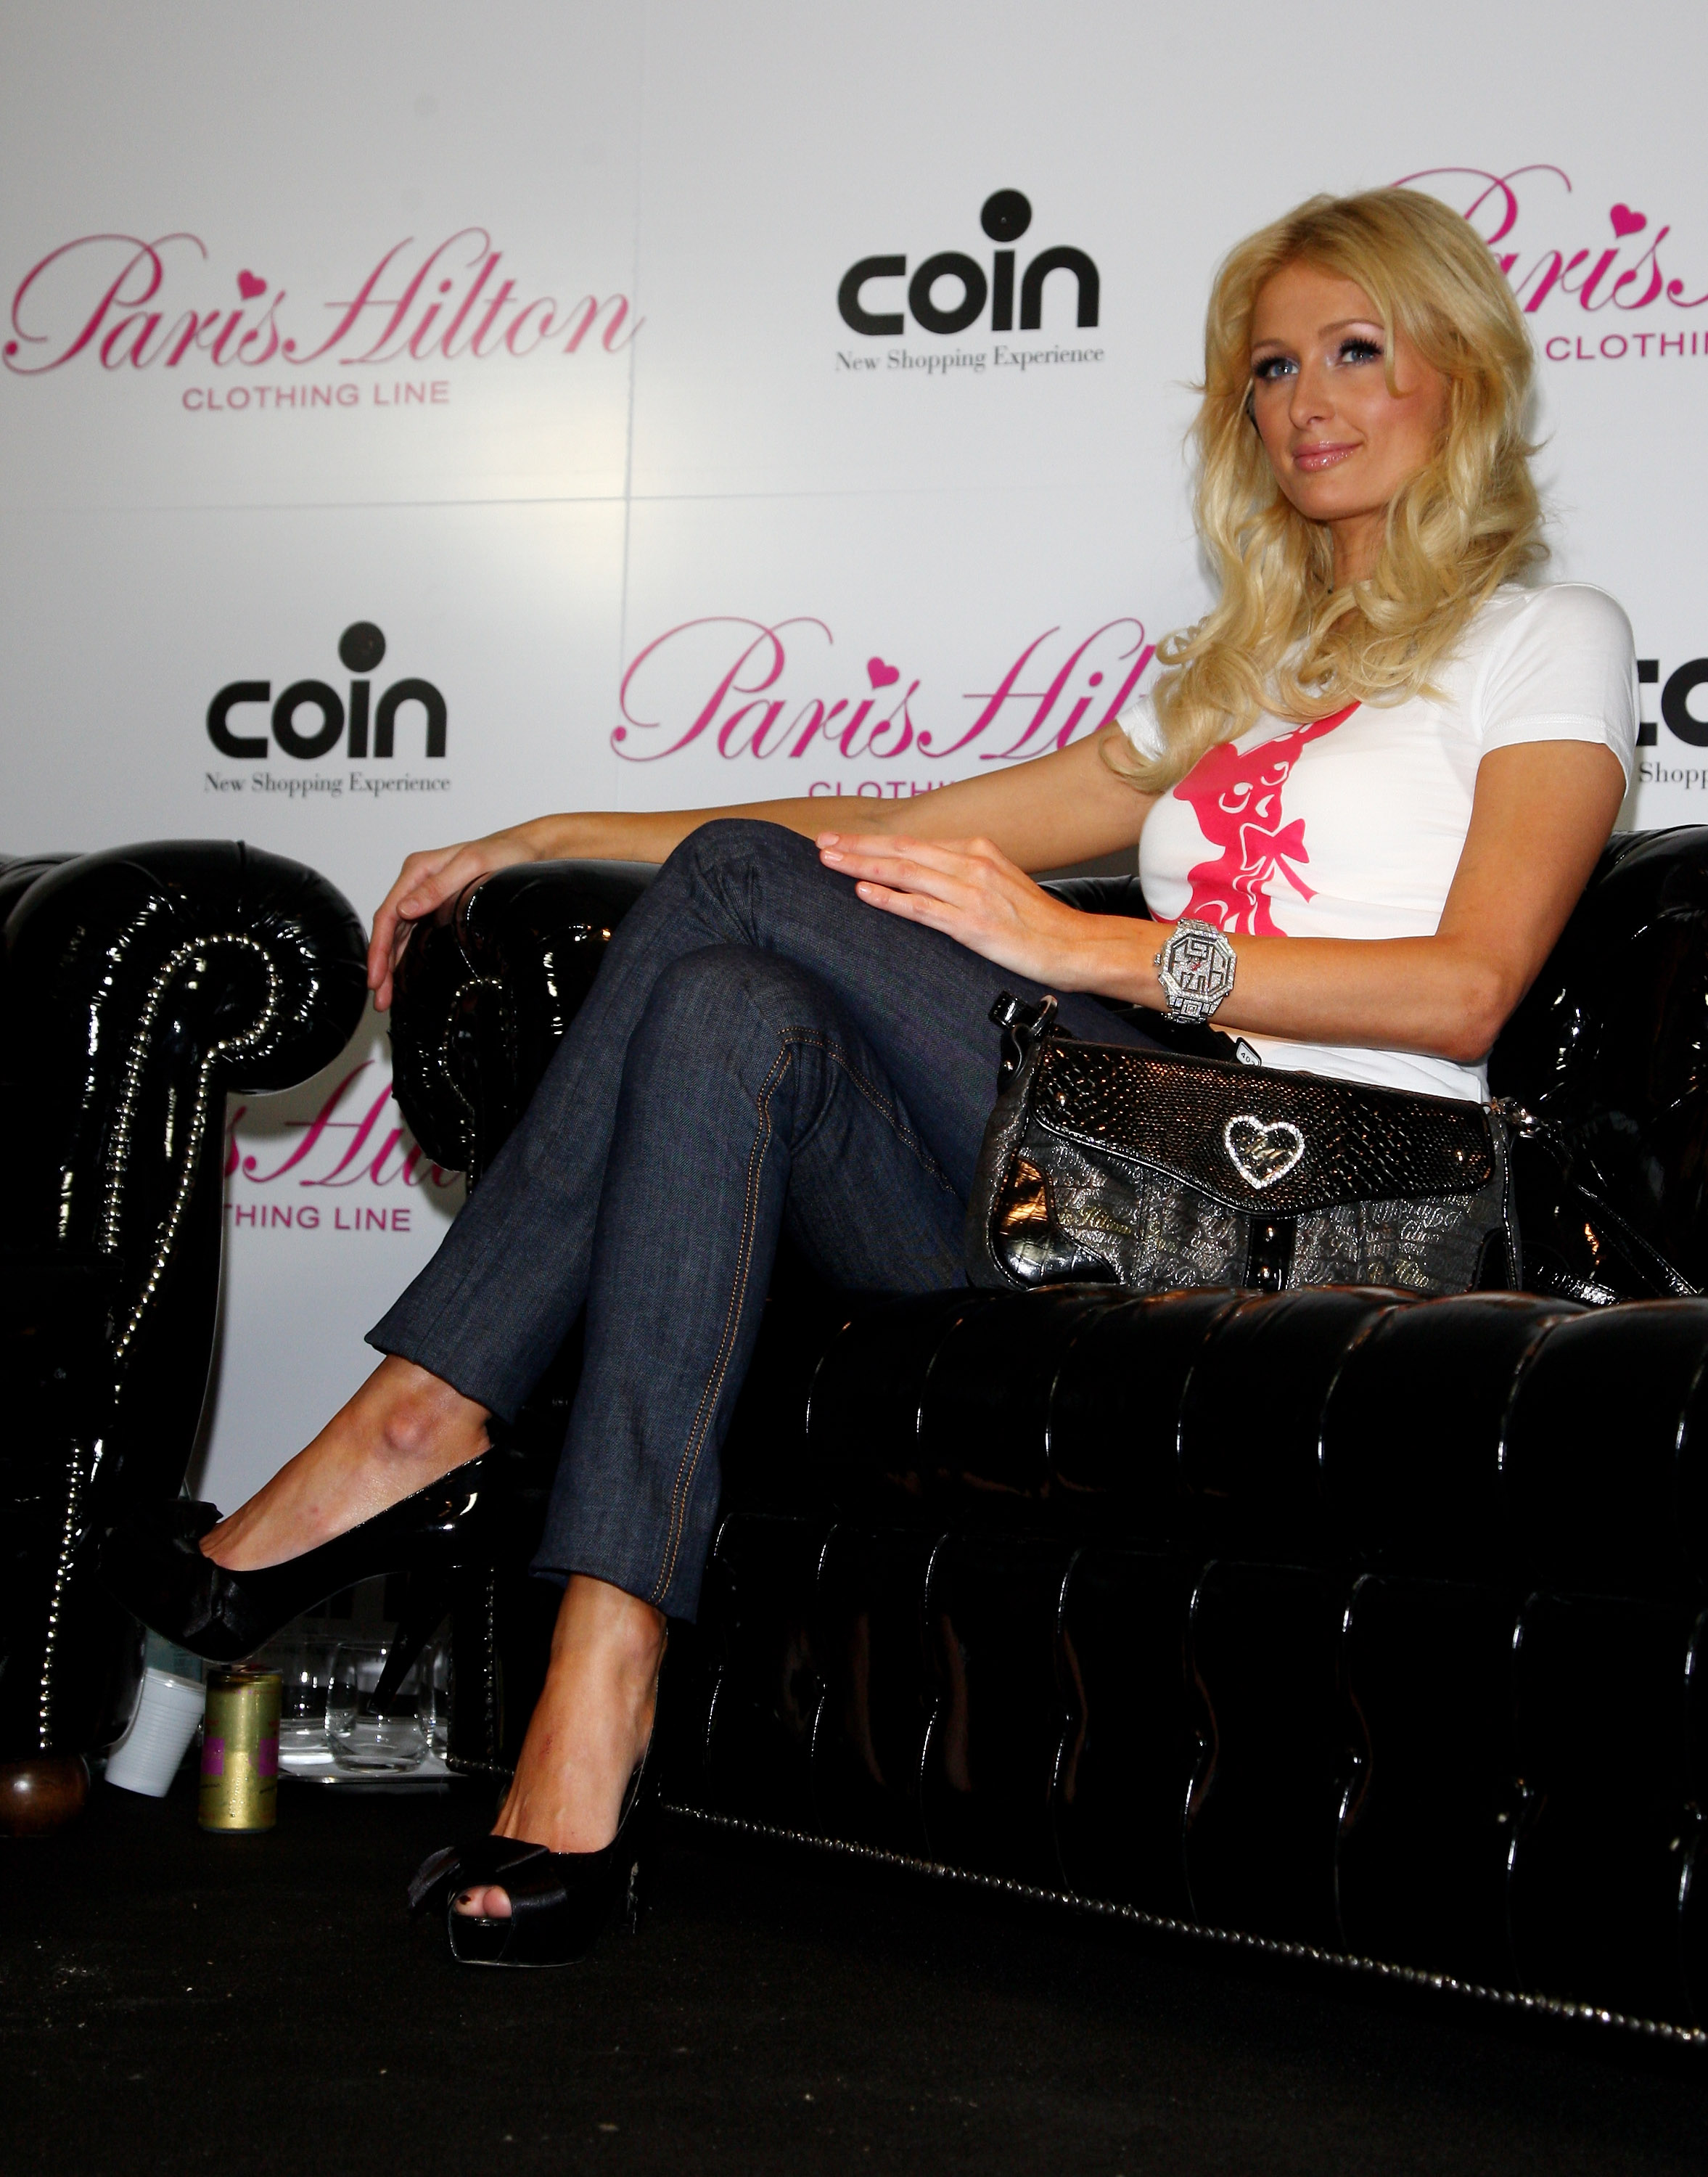 11940_Celebutopia-Paris_Hilton-Launch_of_Paris_Hilton_clothing_line-61_122_971lo.jpg